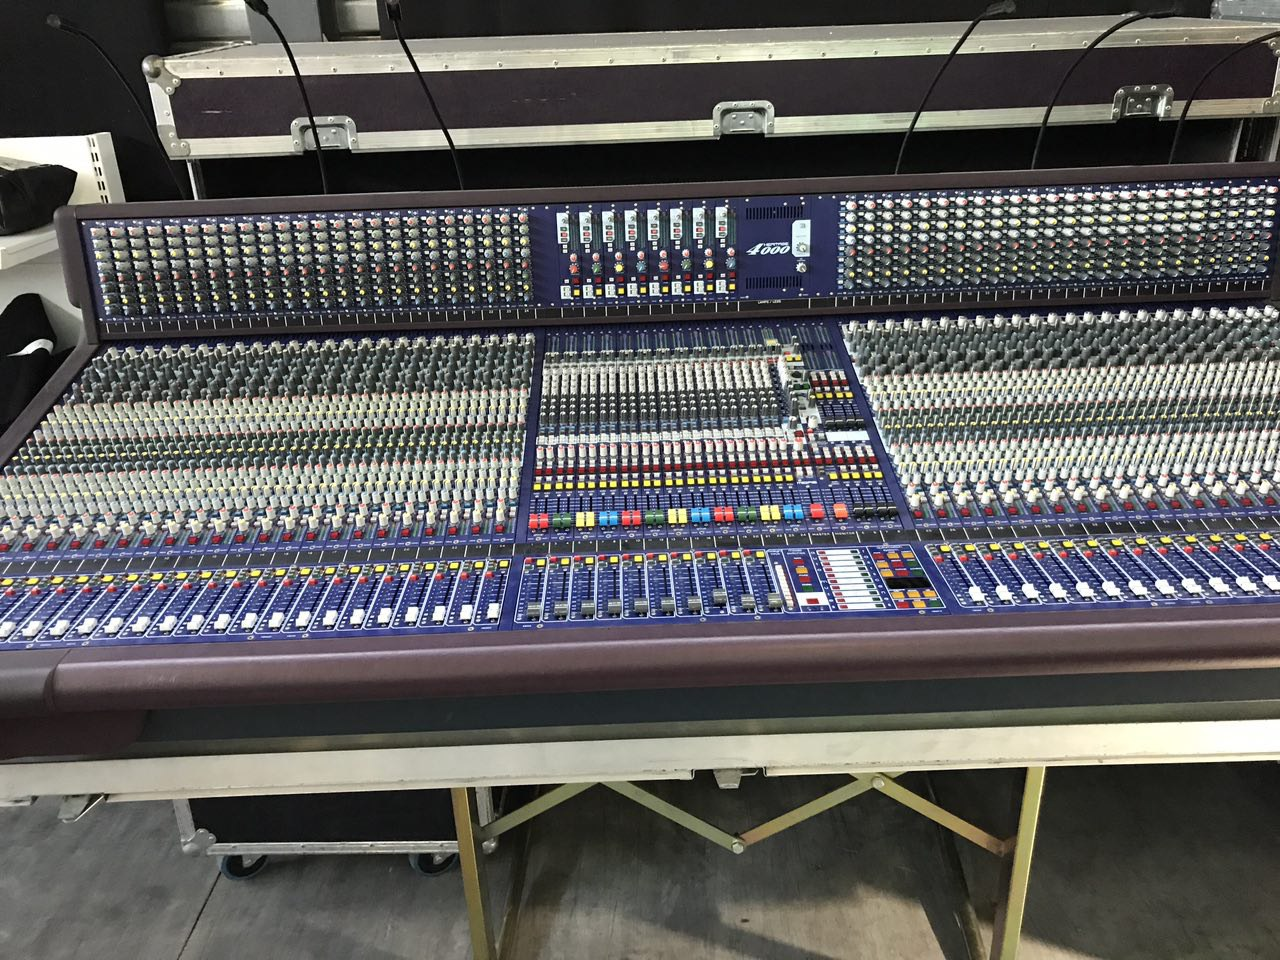 Console Informatique Fly Midas Analog Mixing Console Heritage 4000 With Flight Case Included Used